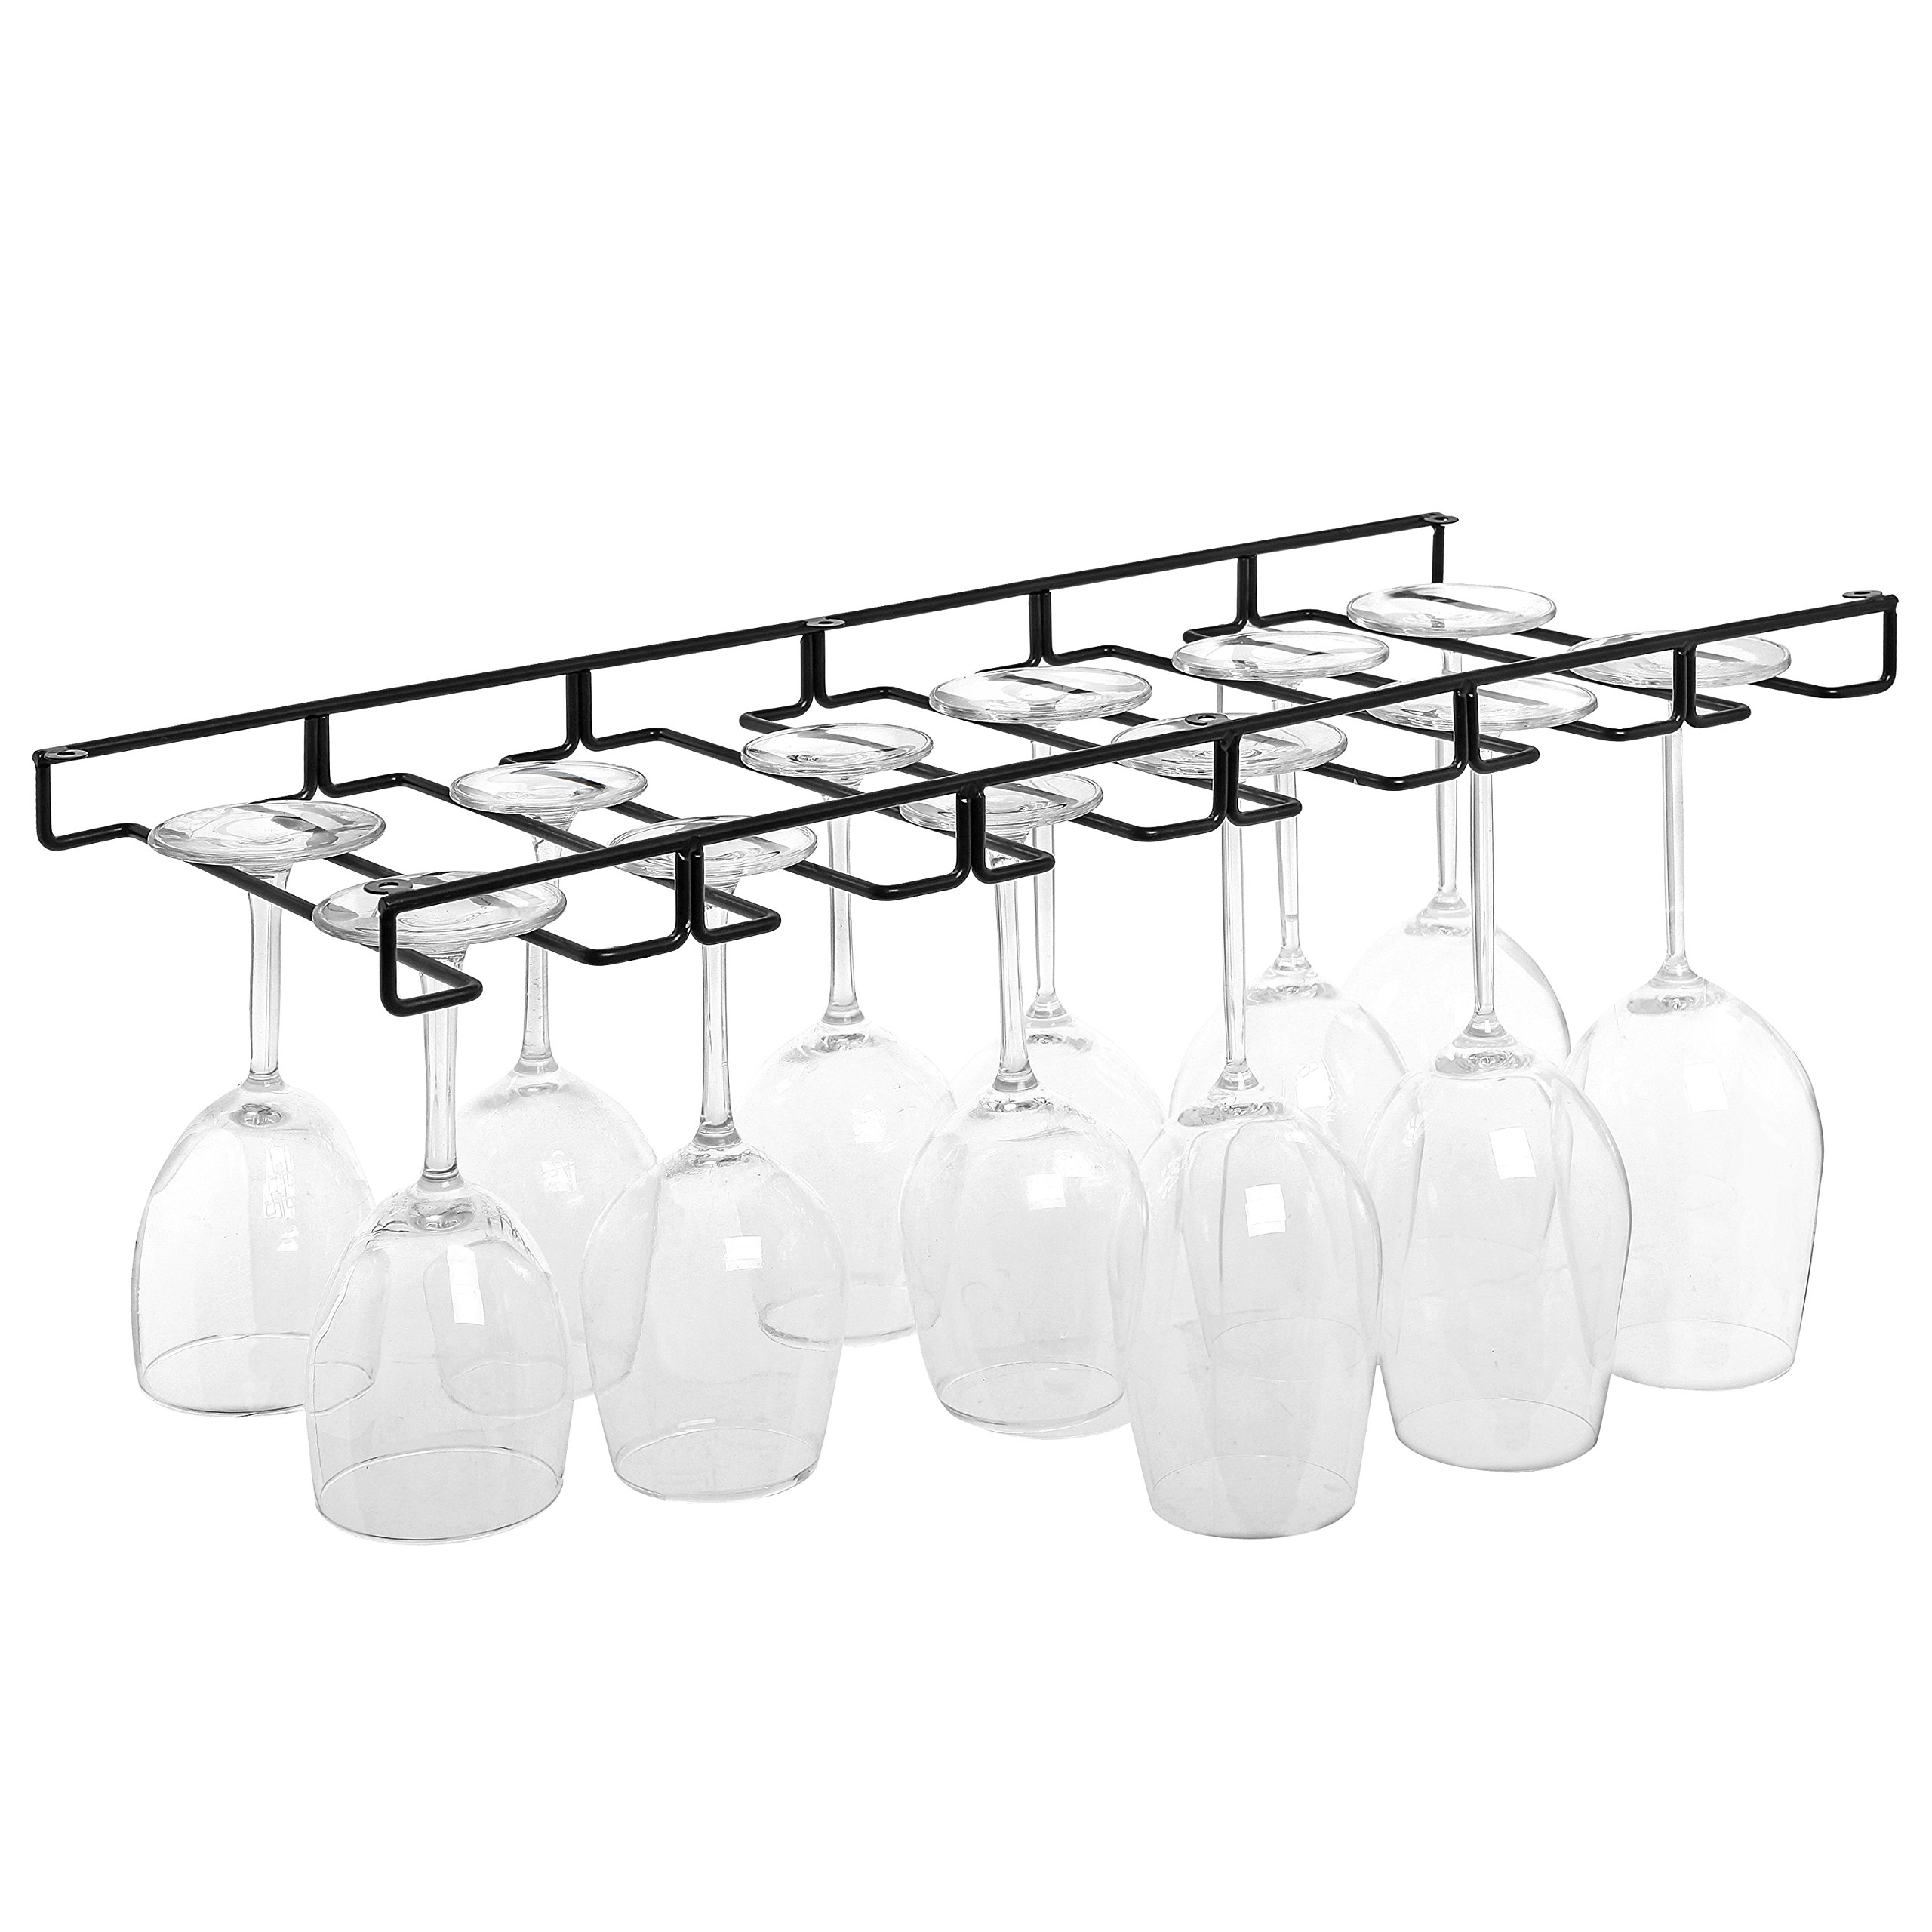 Modern Black Metal Wire Under Cabinet Stemware Wine Glasses Hanger Organizer Storage Holder Rack by MyGift